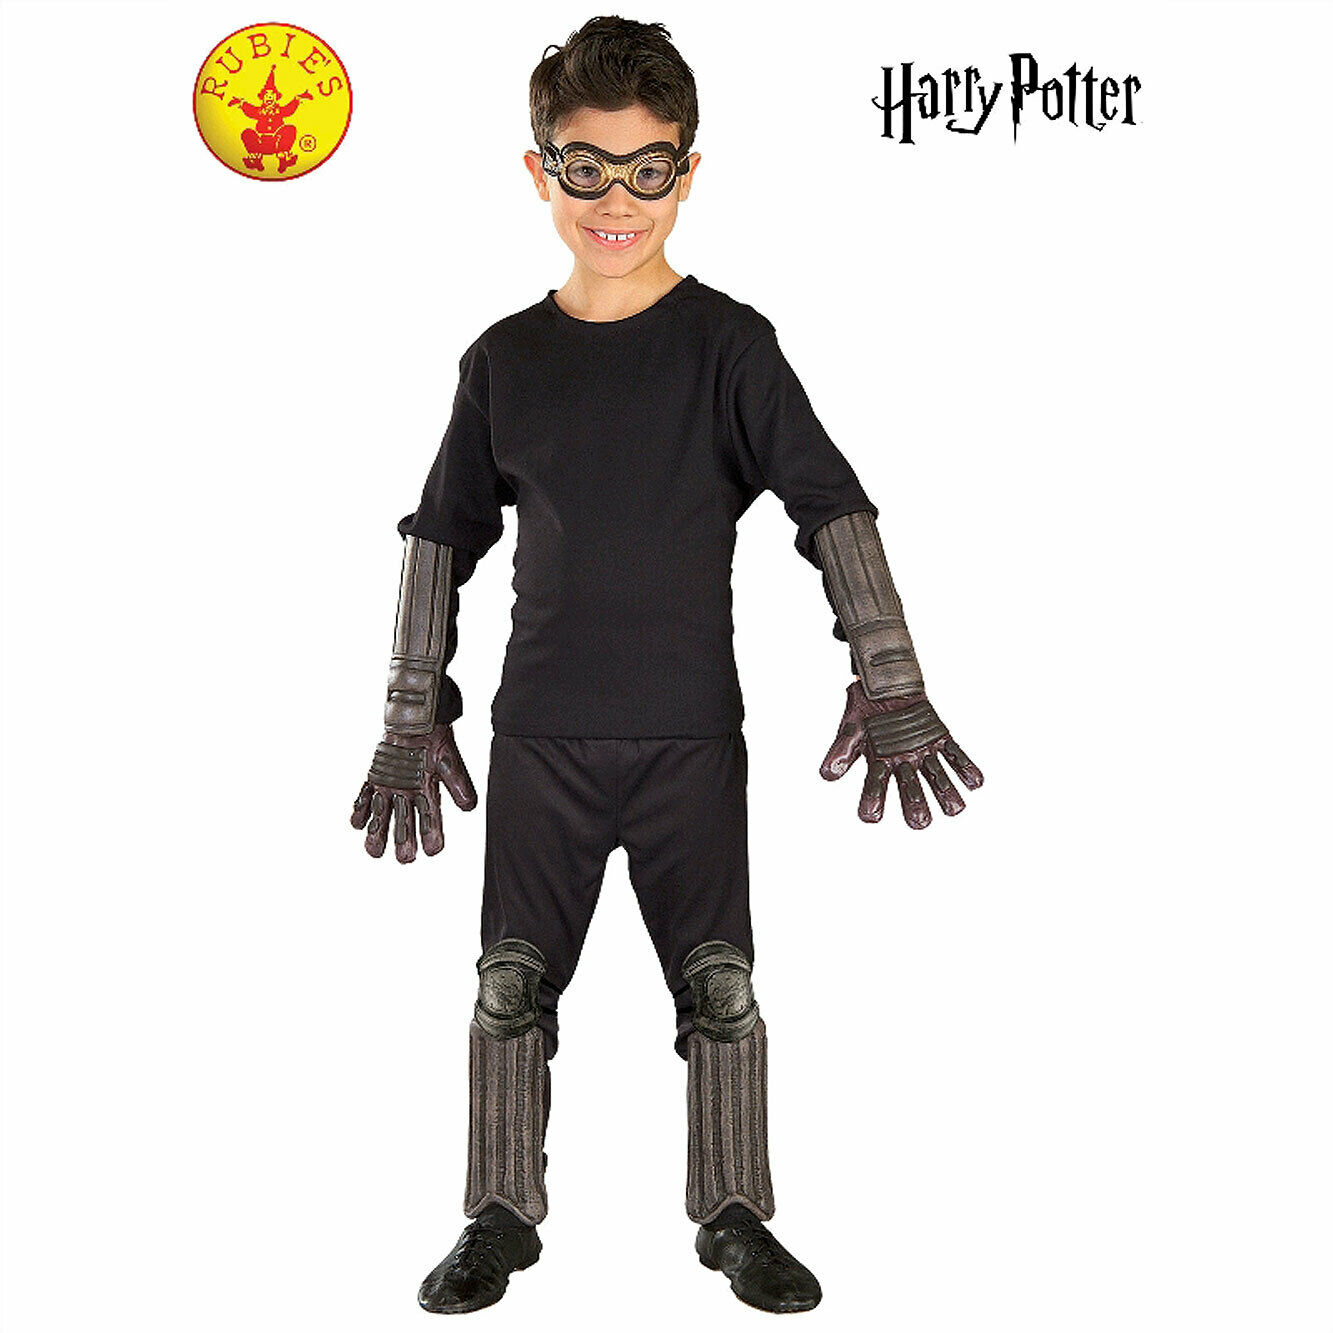 Harry Potter Costume Deluxe Accessory Kit Quidditch Boys Book Week Halloween